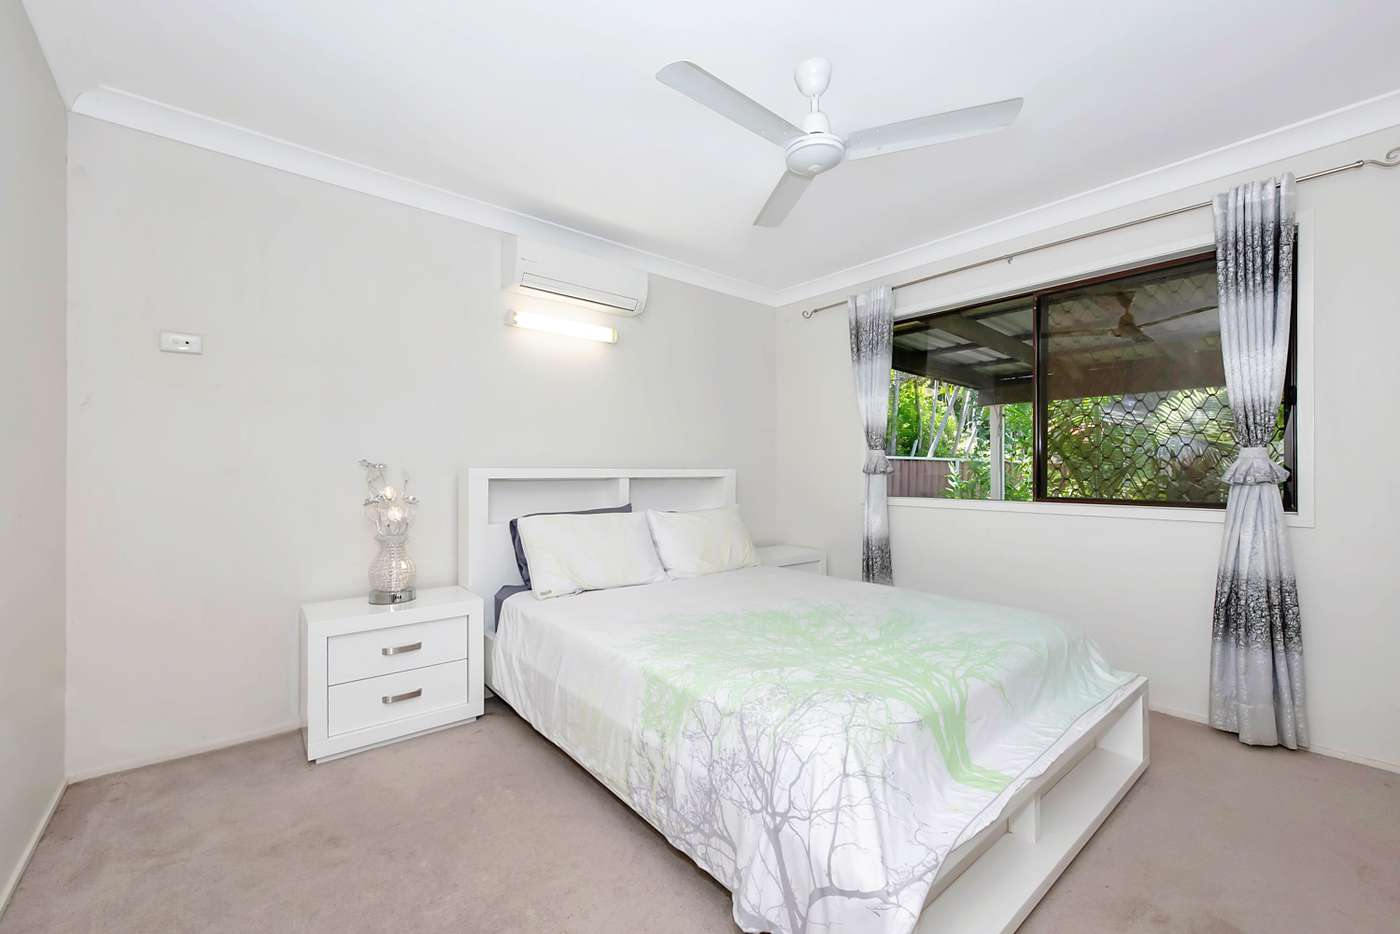 Fifth view of Homely house listing, 2 Lupin Court, Annandale QLD 4814